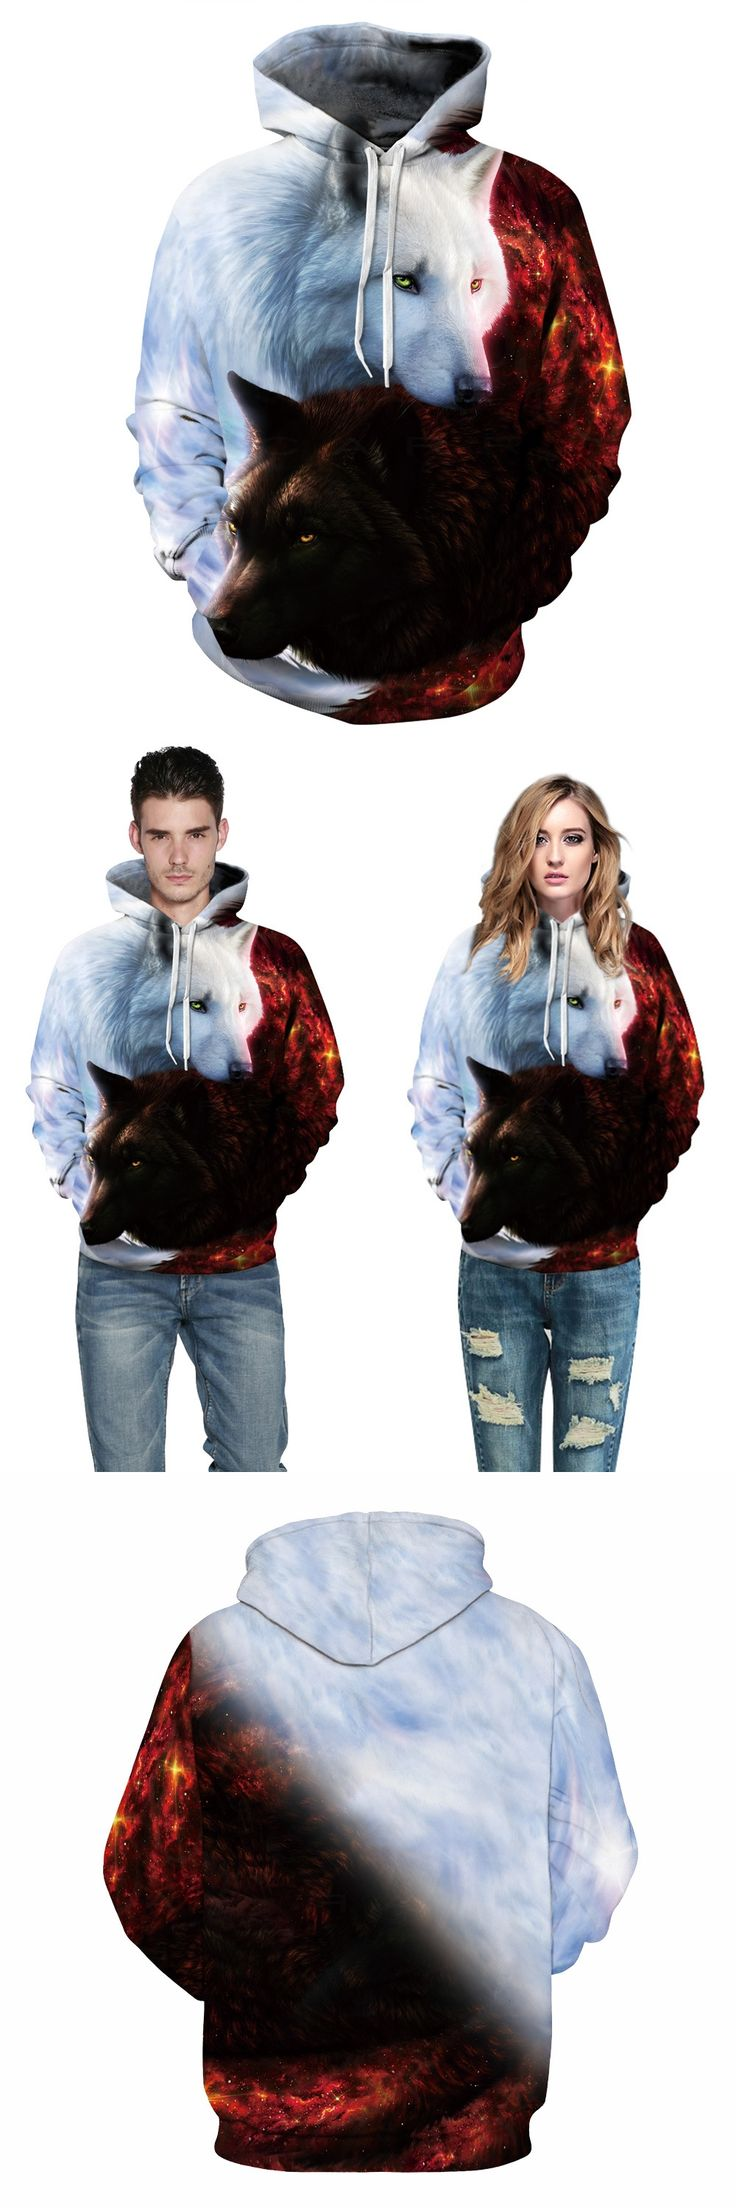 New Fashion Animals Print Hoodies Men/women 3d Sweatshirts With Hat Print White And Black Wolf Hooded Hoodies Hoody